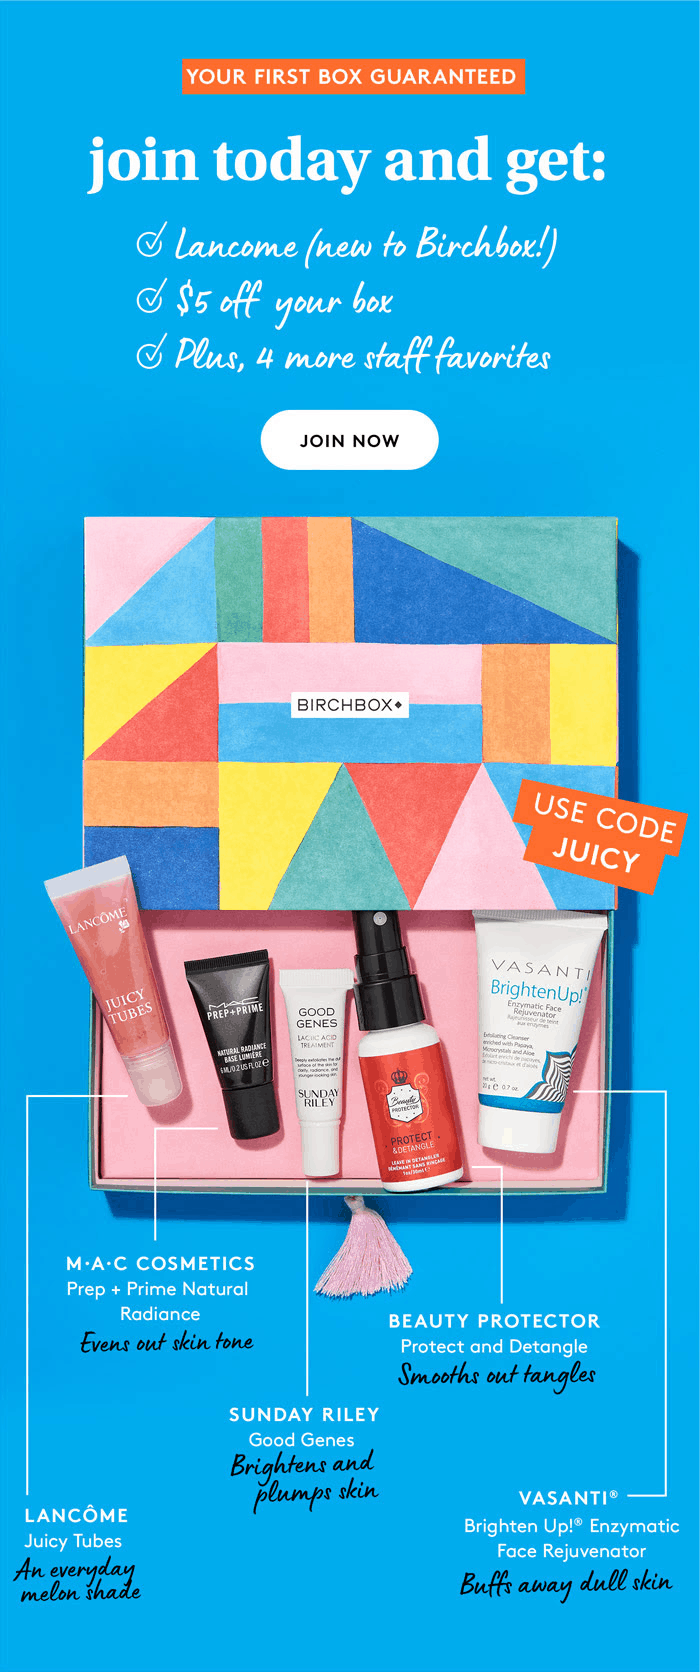 Birchbox Coupon: Start Your First Box With The Staff Favorites Box + $5 Off!